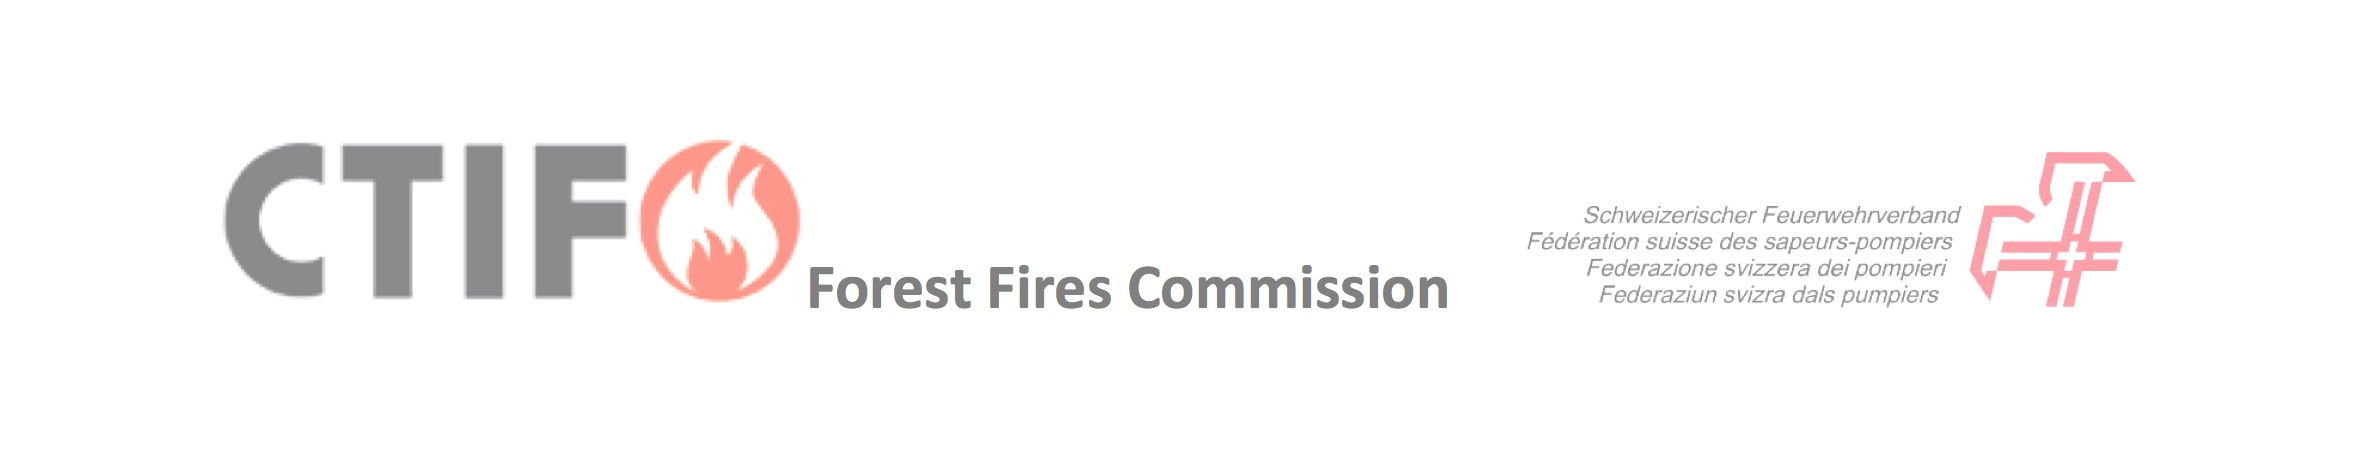 CTIF Forest fire commission banner